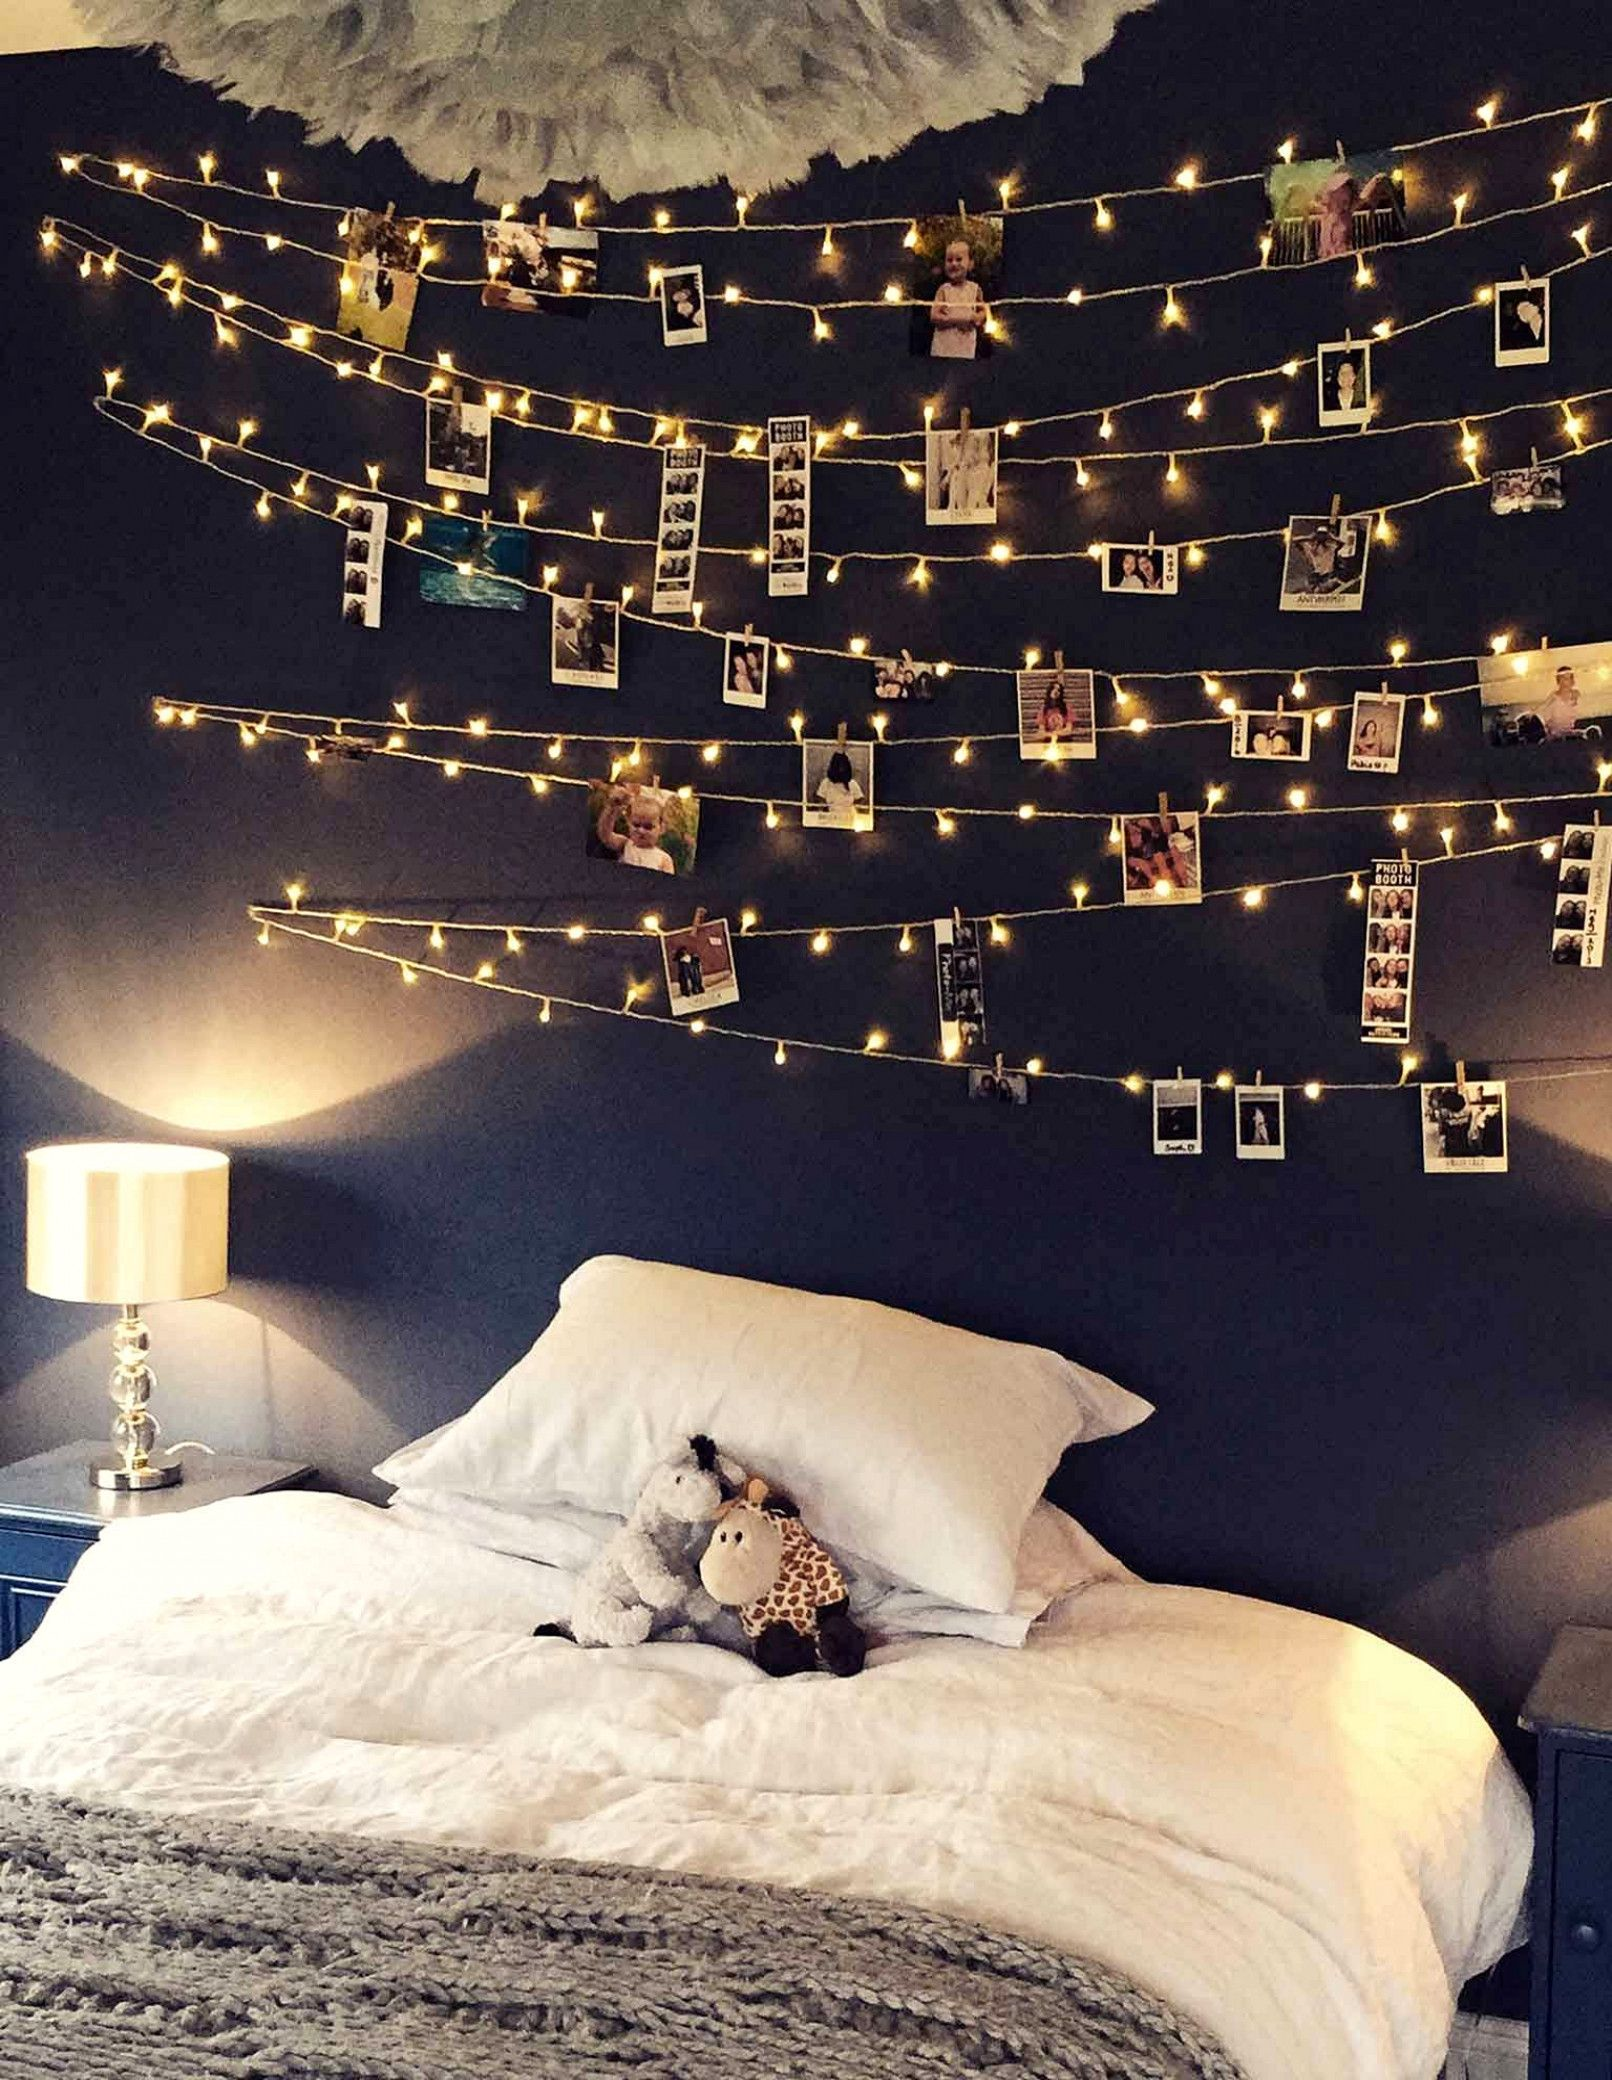 Creative Lighting Enhances Any Bedroom Design These